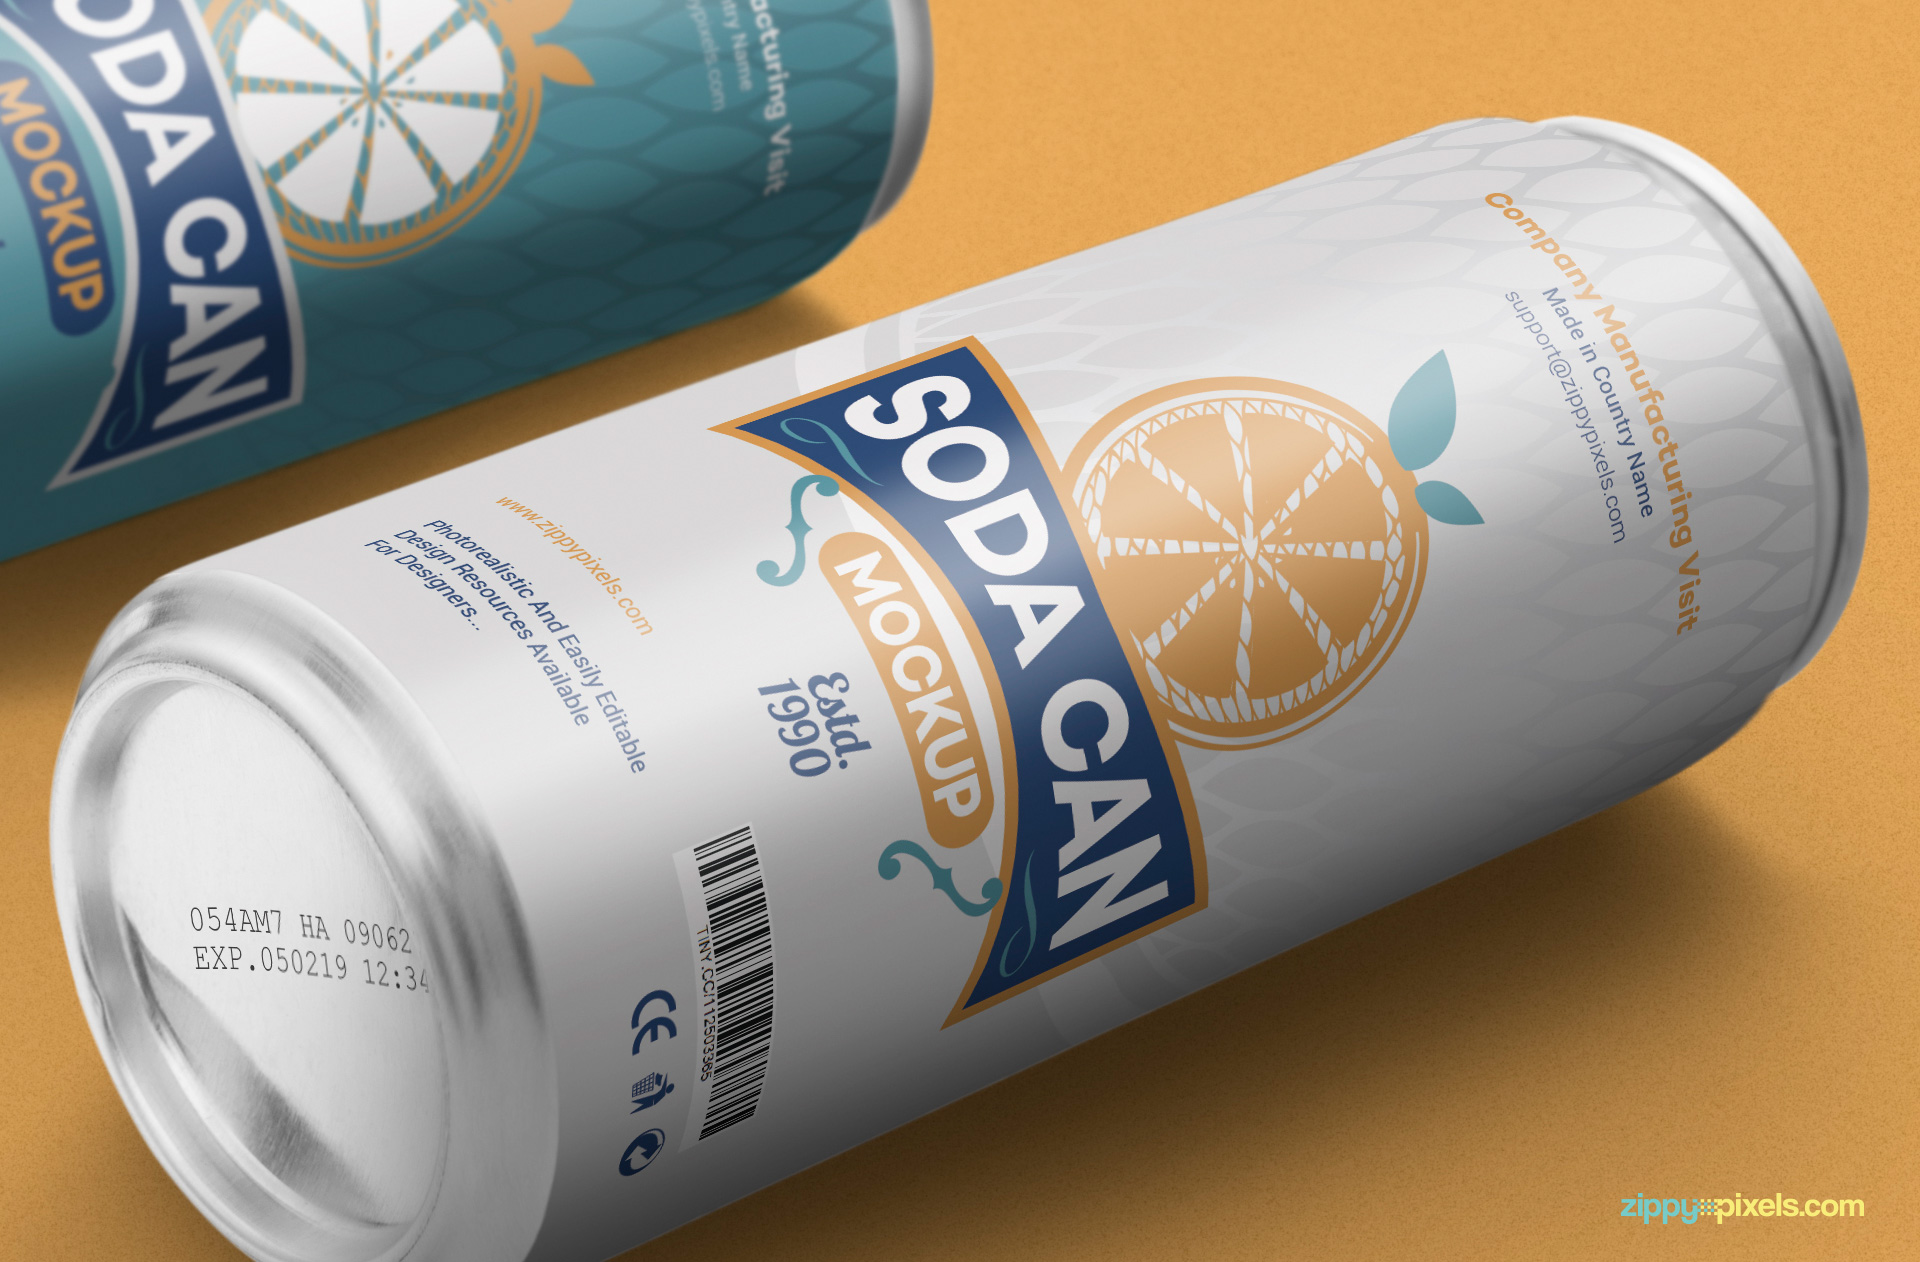 Close up view of soda can mockup.